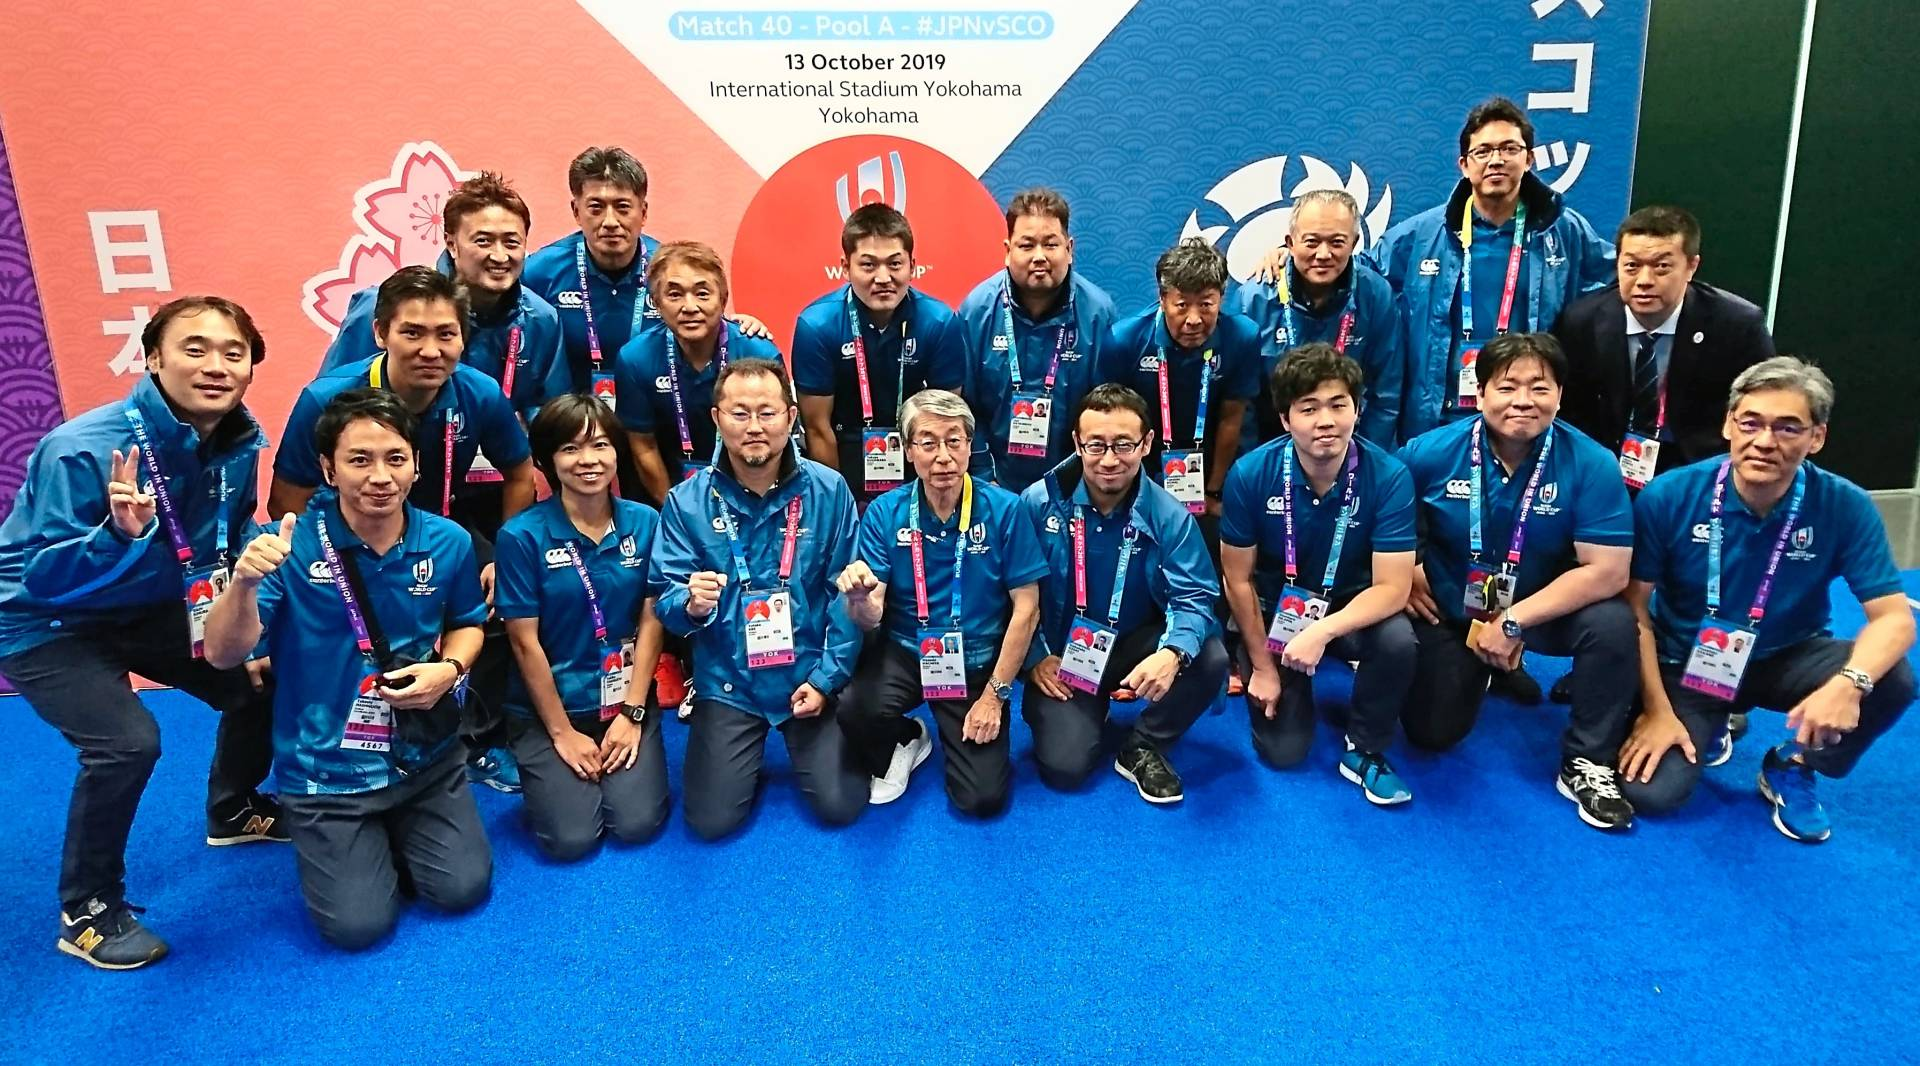 A photo of the Match Day Medical Team for the Japan-Scotland match, including Dr Azril (top row, second from right), the Match Day Doctor for the game.